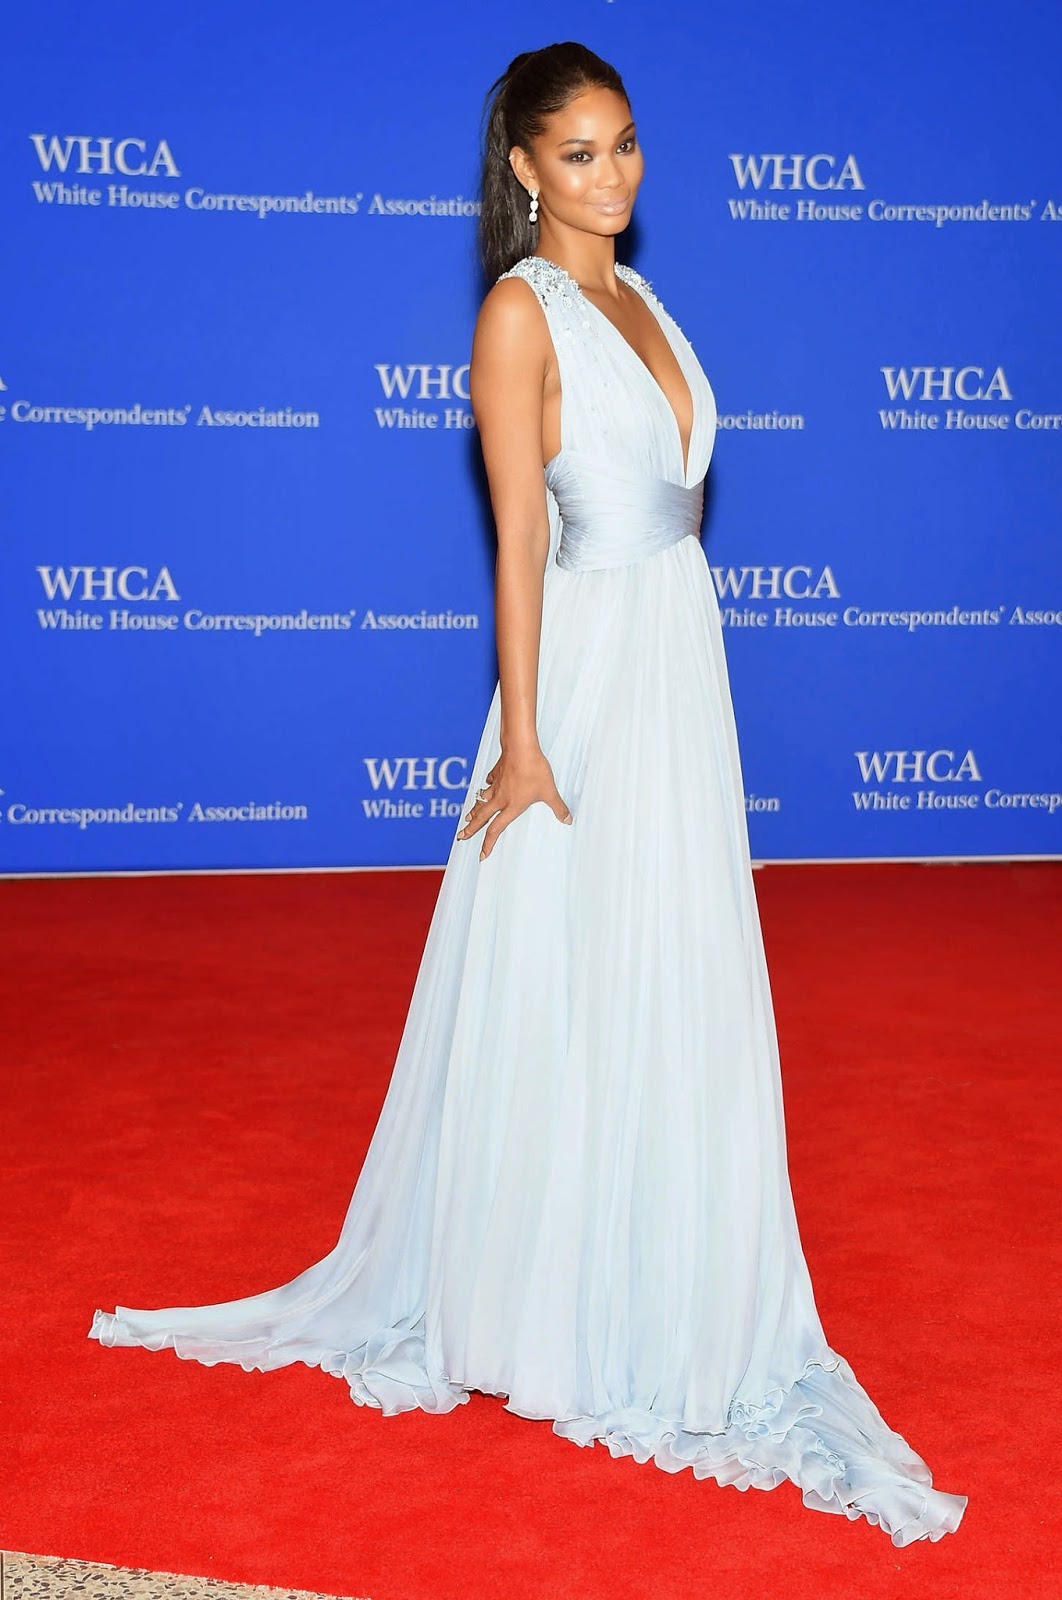 Chanel Iman smoulders in a low cut gown at the 2015 White House Correspondents'  Association Dinner